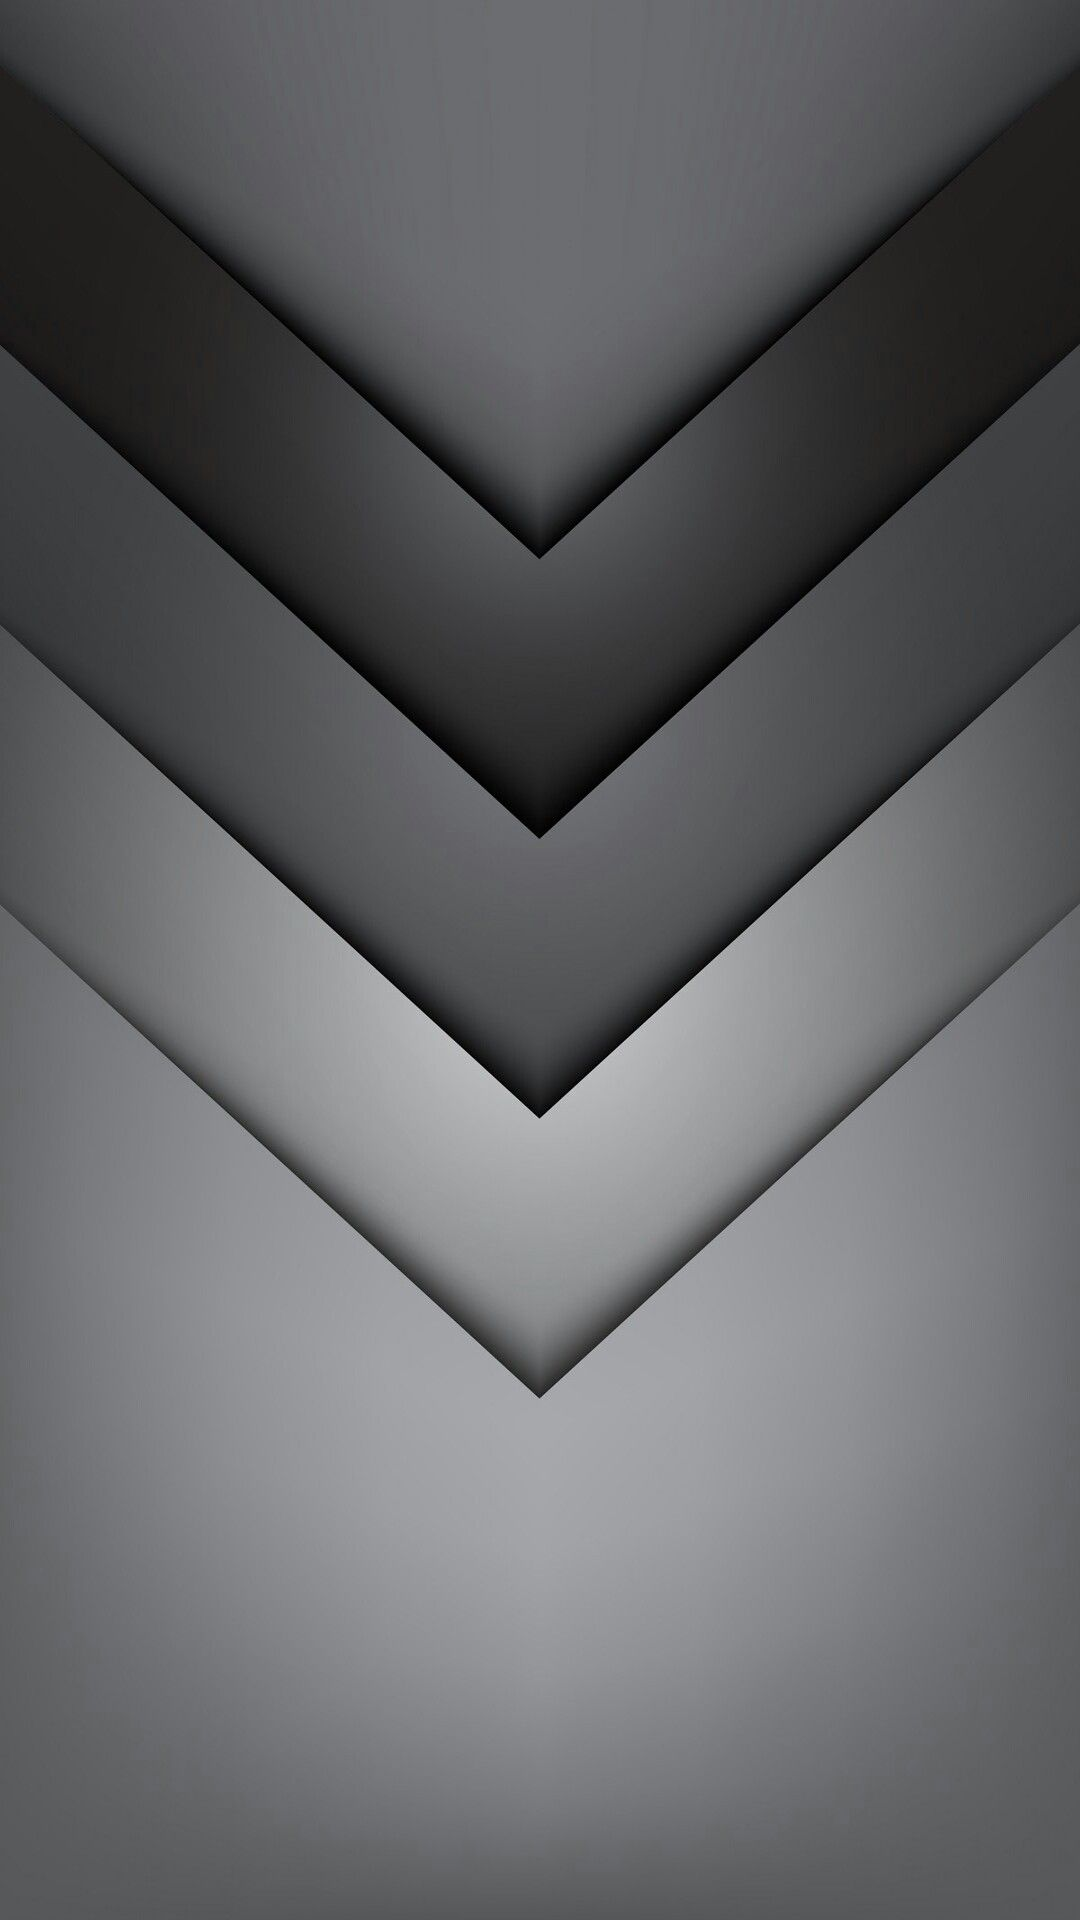 1080x1920 Gradient Grey Chevron Wallpaper | *Abstract and Geometric ...